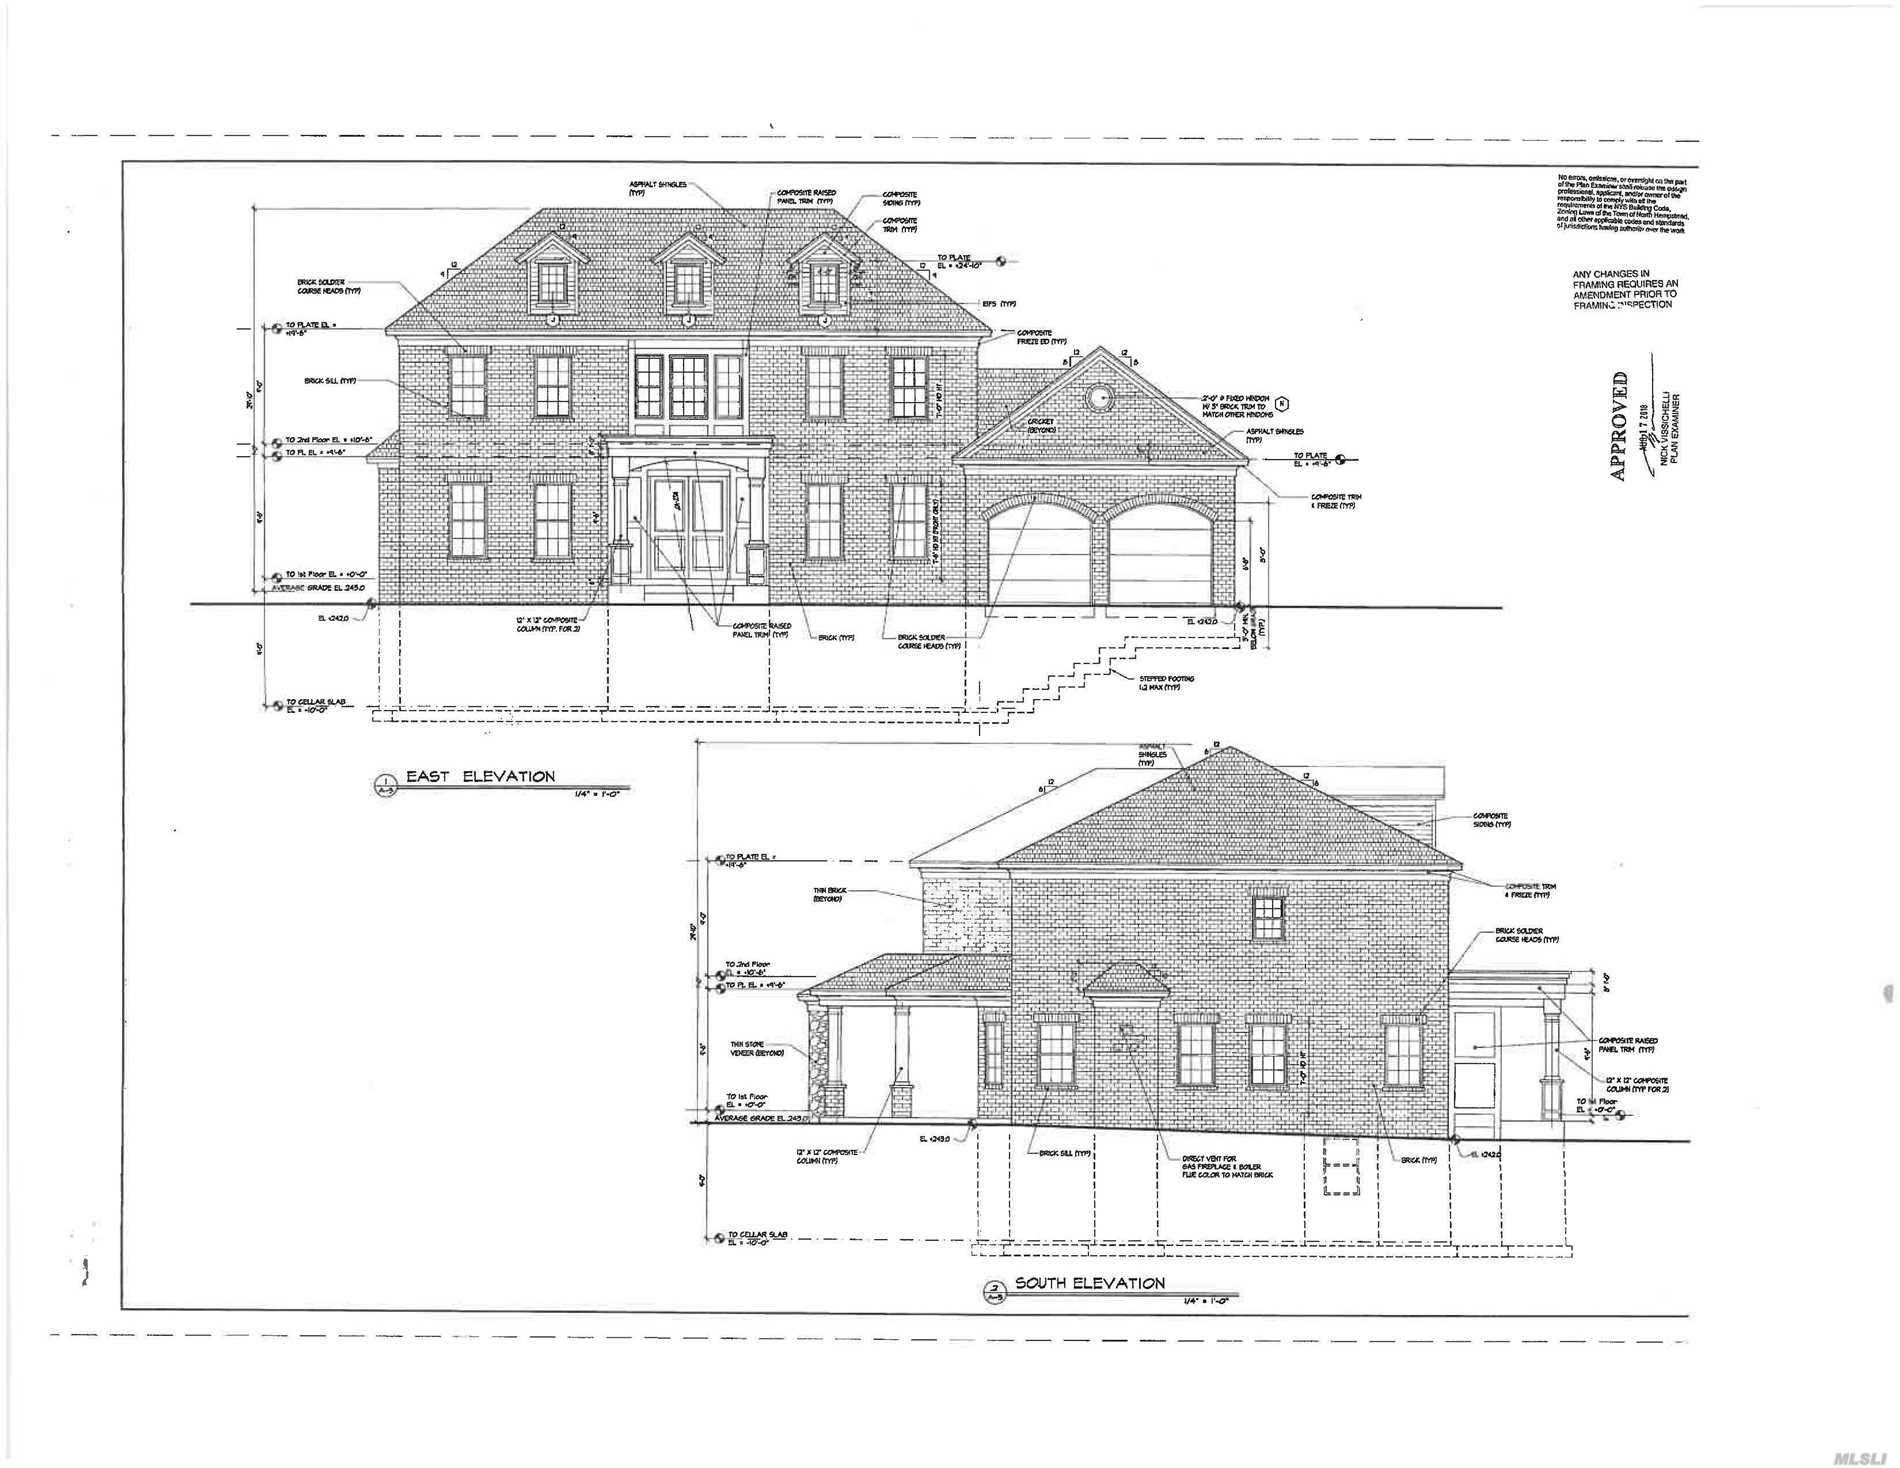 Rare Opportunity To Work With The Builder On Selecting Interior Finishes On Stately Brick Center Hall Colonial With Spacious Entertaining Rooms, Stunning Covered Patio W Gorgeous Outdoor Fireplace. Master Suite With Walk In Spacious Walk In Closet And Soon To Be Spa Like Master Bath. This Is An Opportunity Not To Be Missed In Creating Your Dream Home. Completion In Late Spring 2019 . 4000 Sq Ft Plus Finished Lower + Generator, Second Laundry Room, Radiant Heat, Pre Wired Audio/Surround & More.